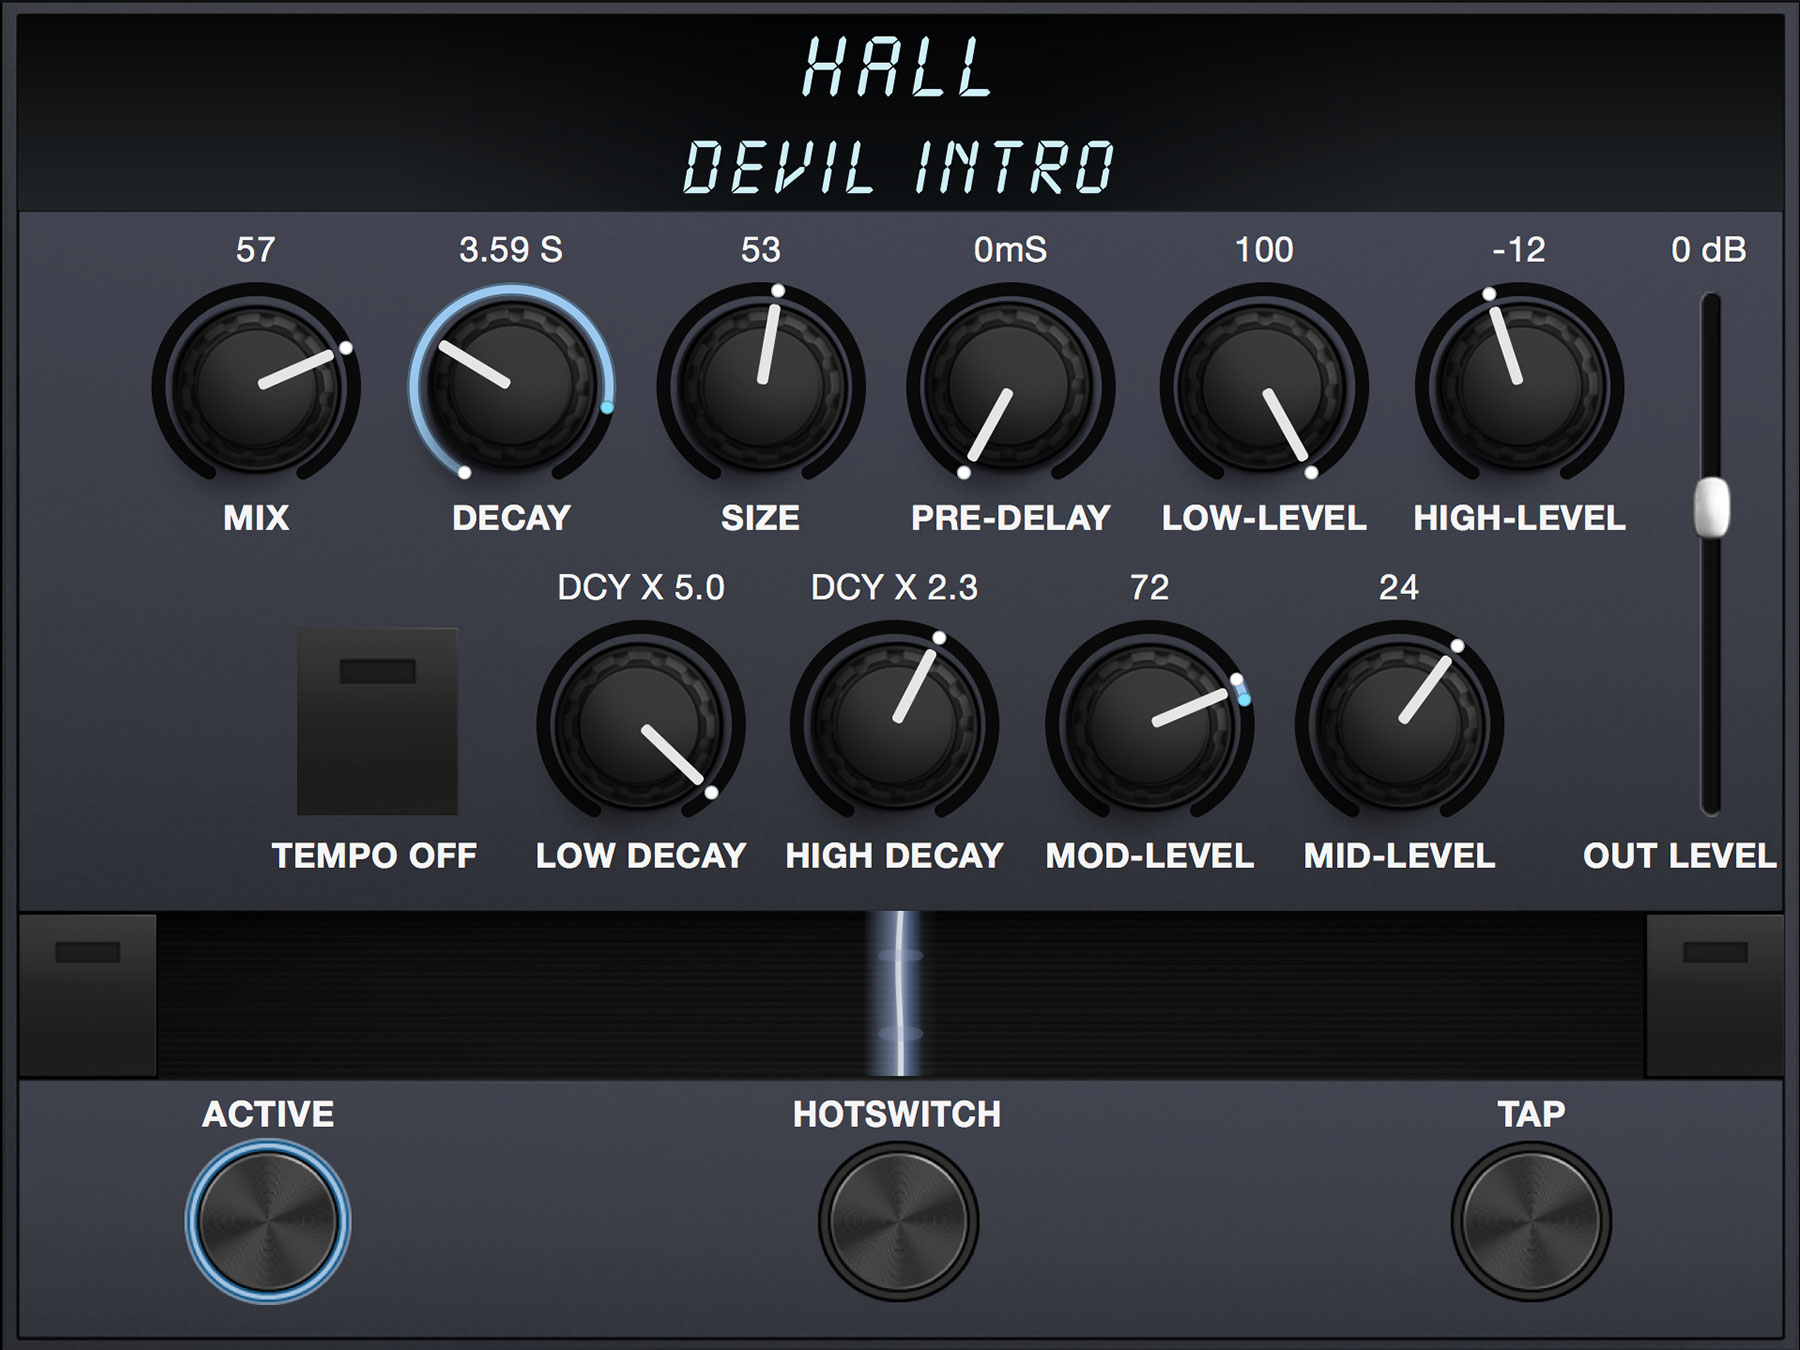 Screenshot of Hall algorithm preset Devil Intro by Derya Nagle